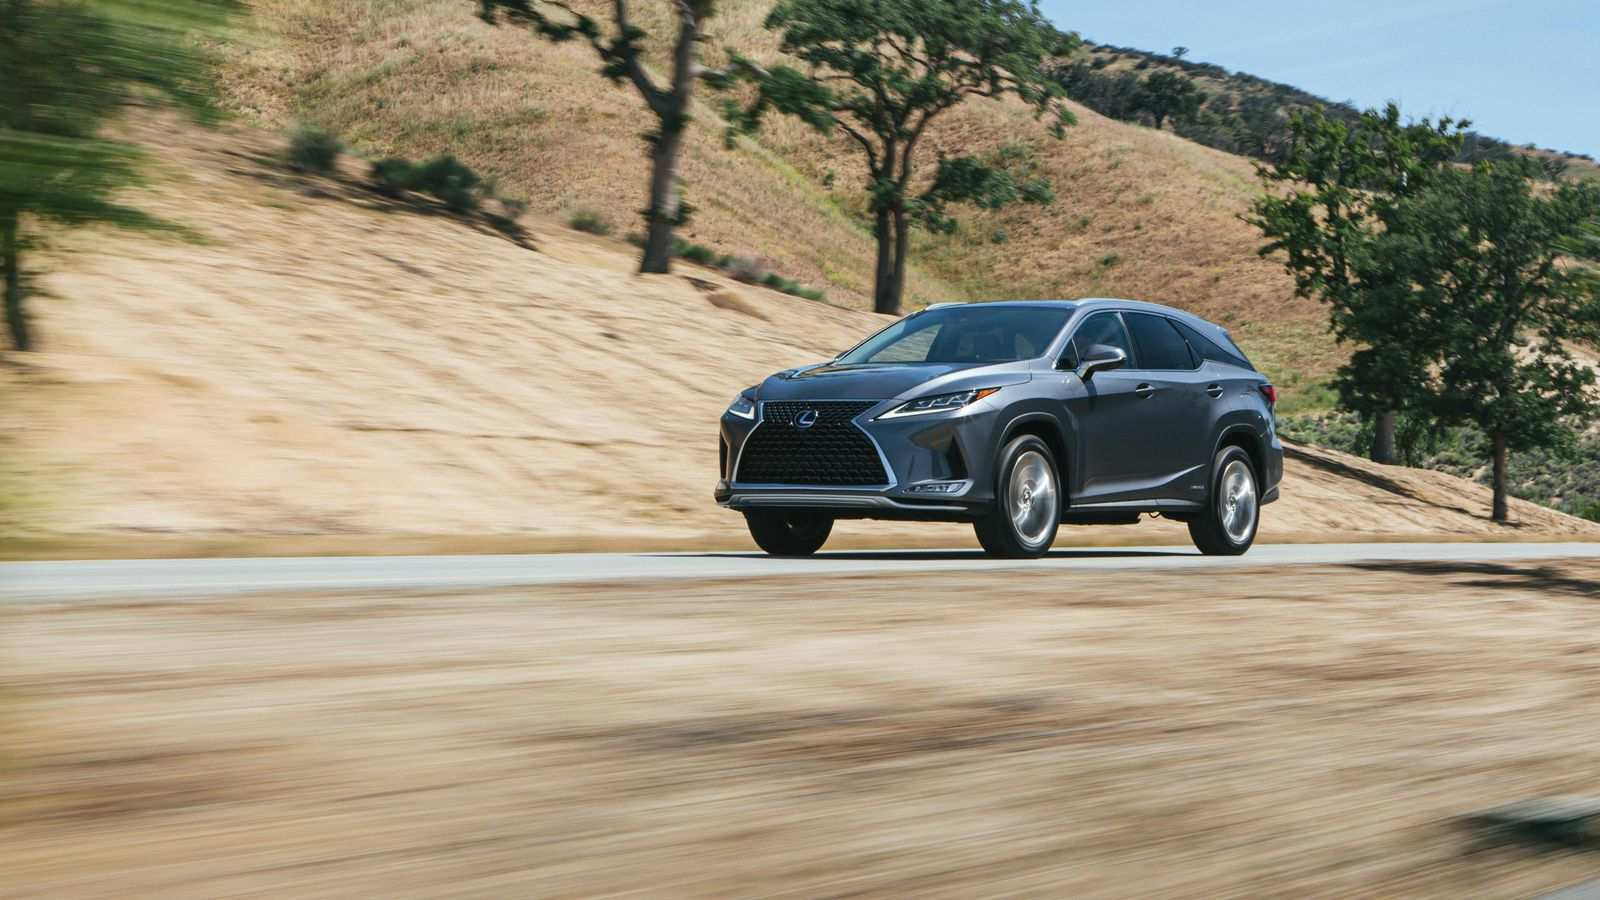 43 All New When Do 2020 Lexus Come Out Spy Shoot with When Do 2020 Lexus Come Out